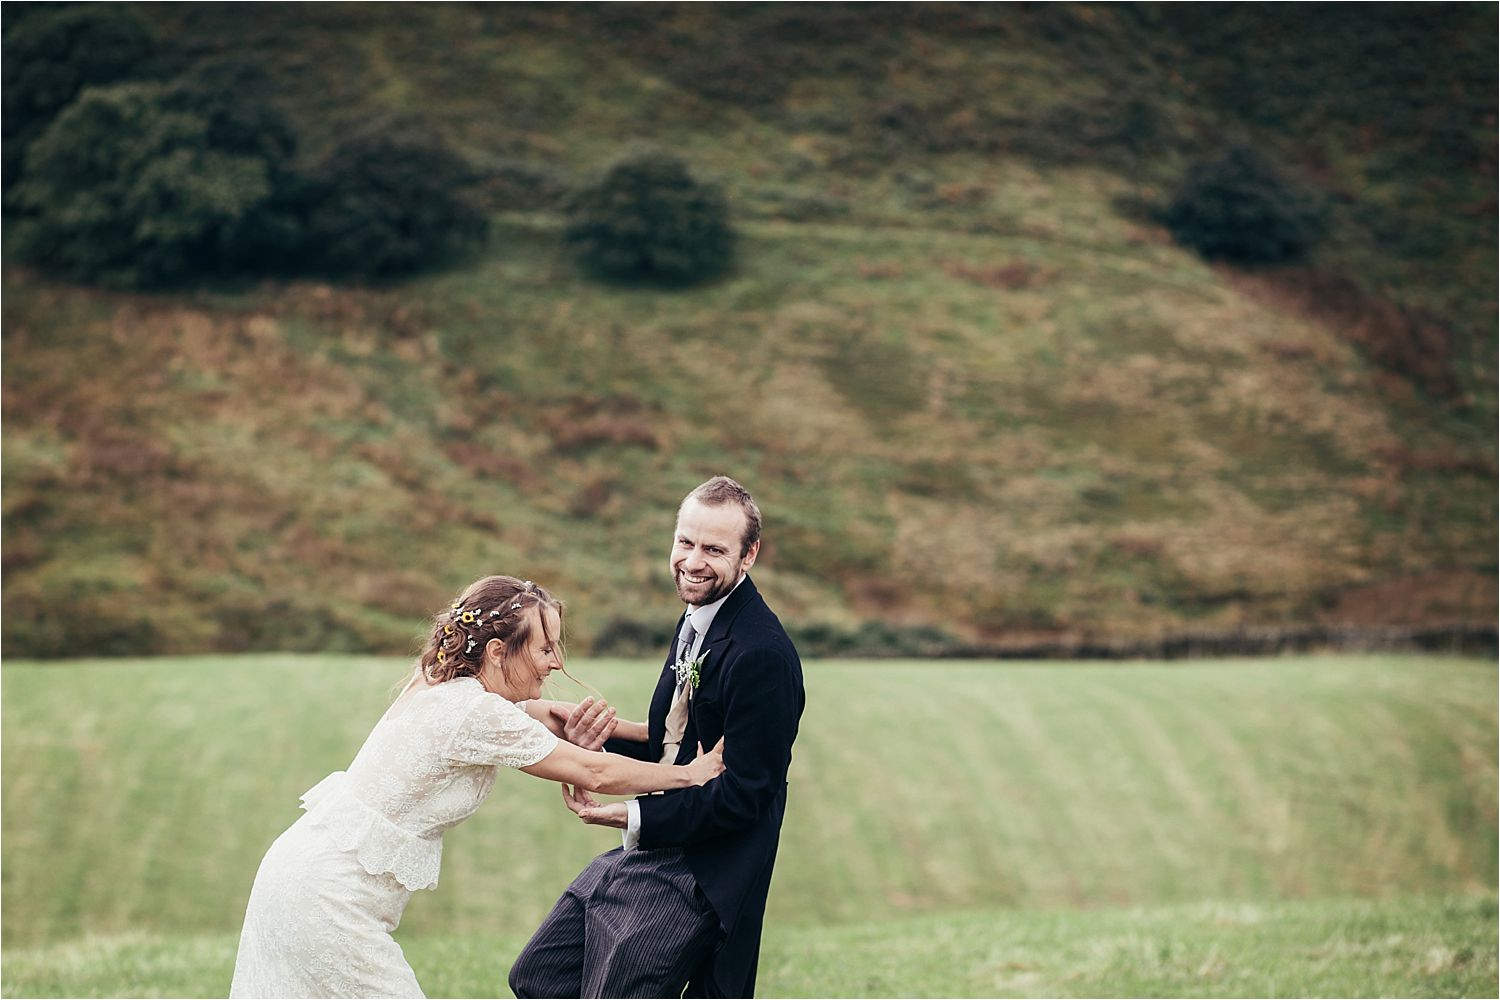 Bride and groom having fun at rural Manchester wedding